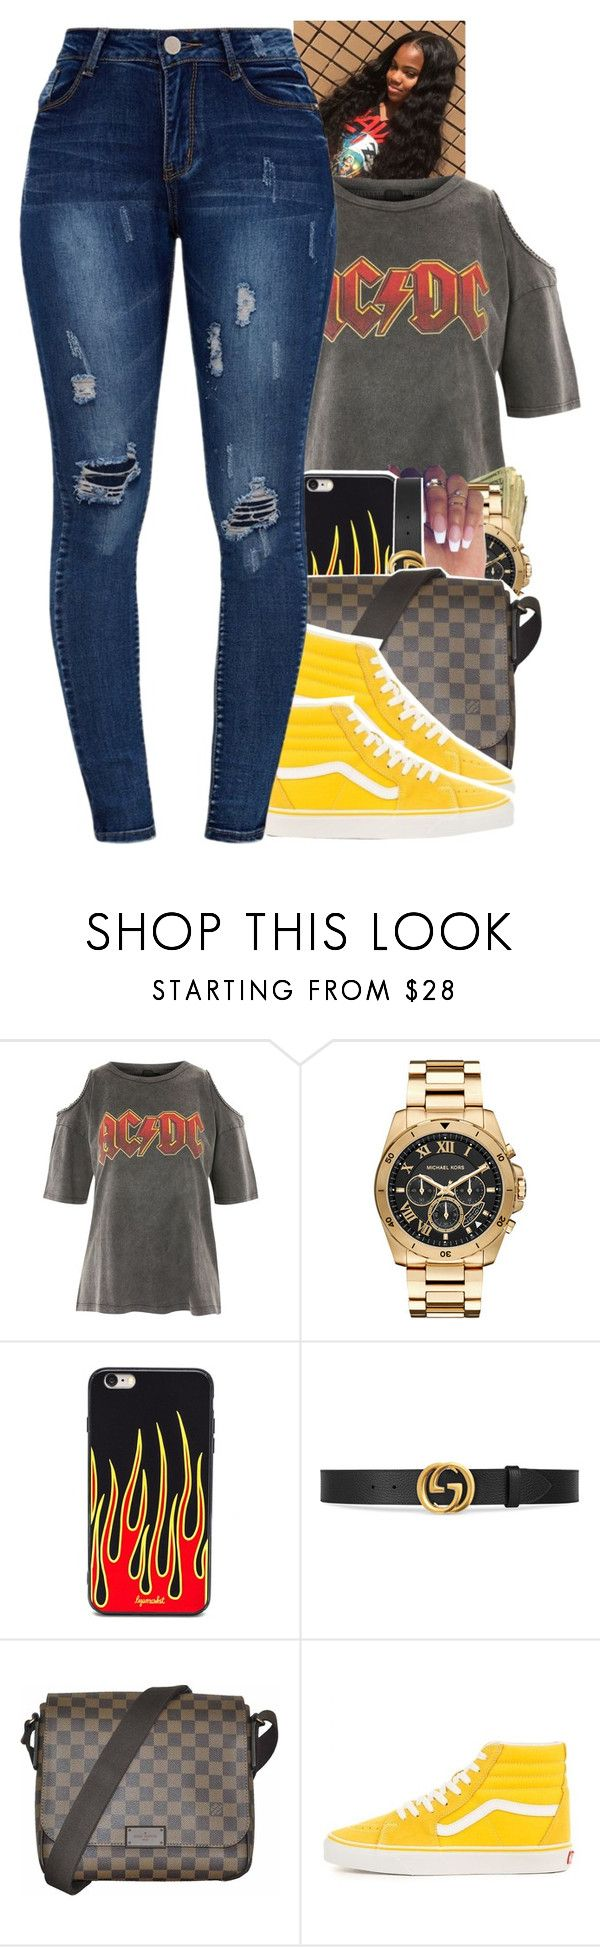 """""""Untitled #2301"""" by txoni ❤ liked on Polyvore featuring And Finally, Michael Kors, Gucci and Louis Vuitton"""